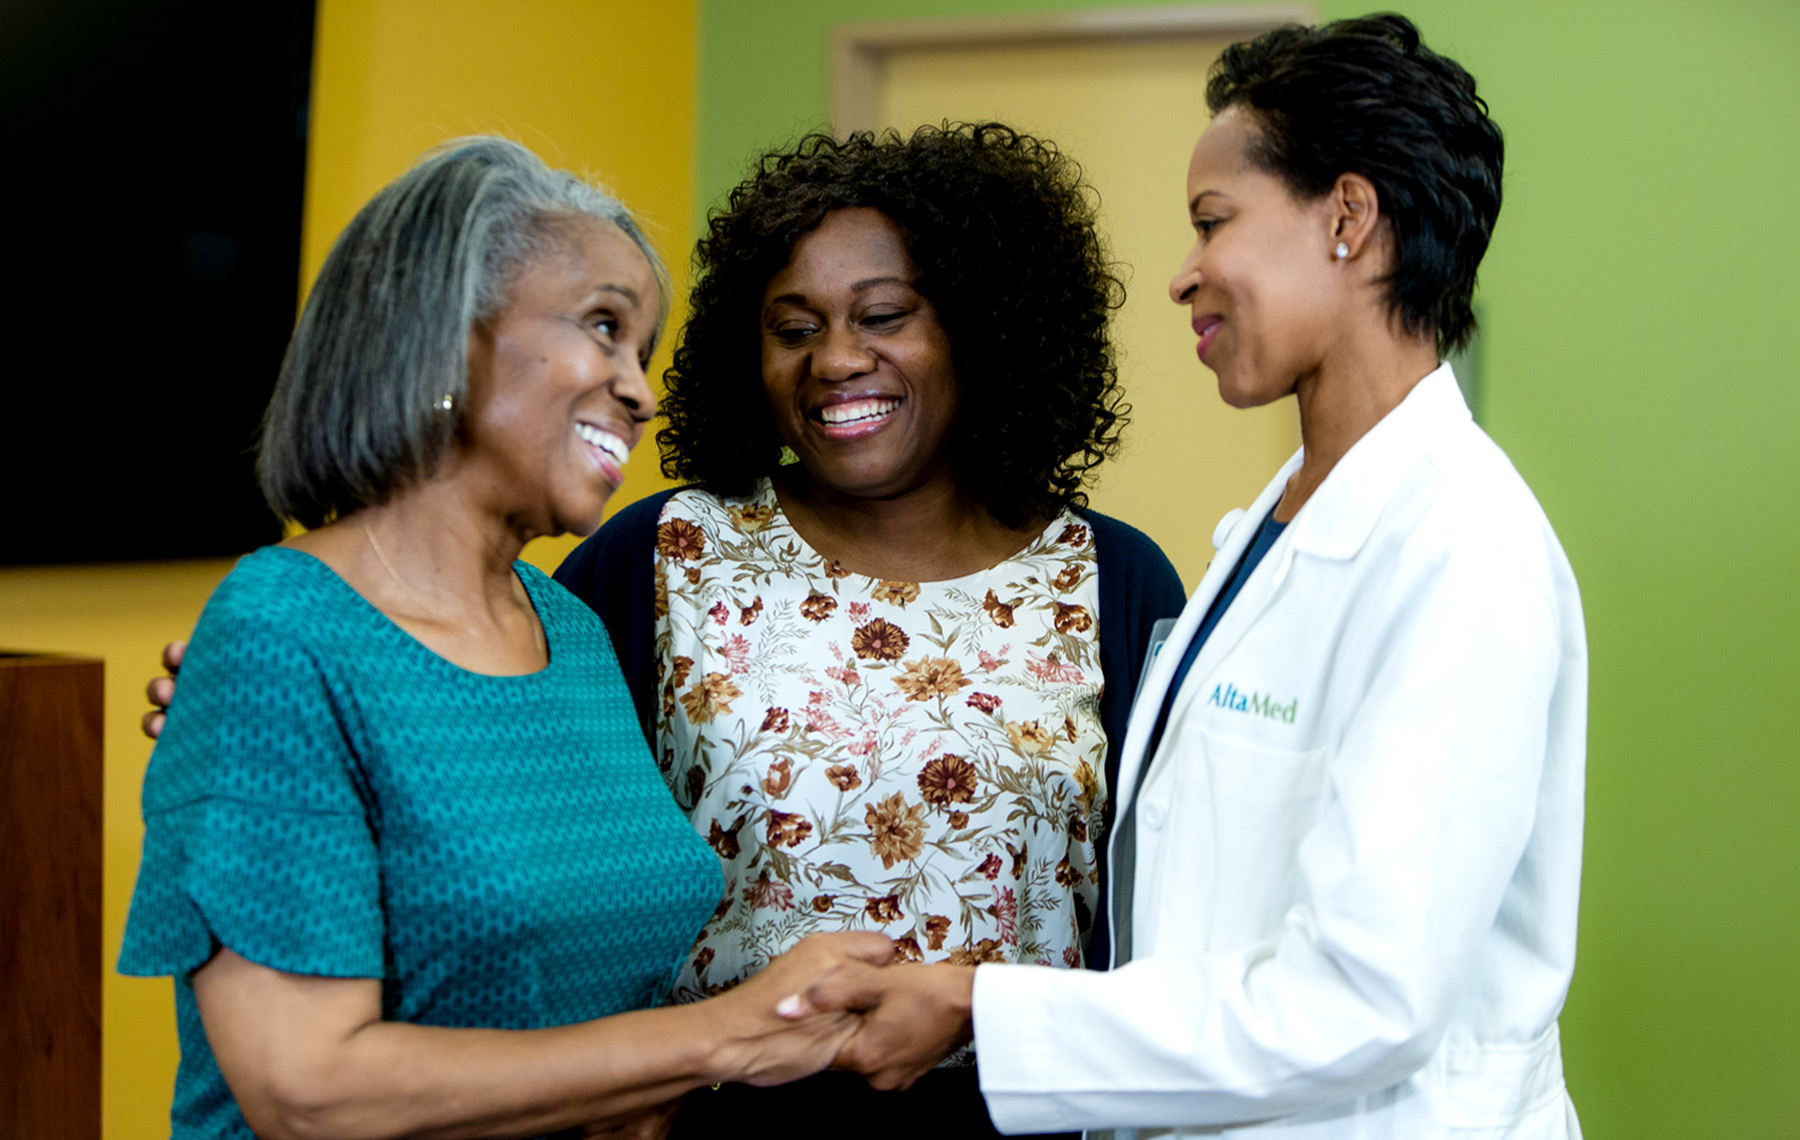 Doctor and nurse talking to a senior woman